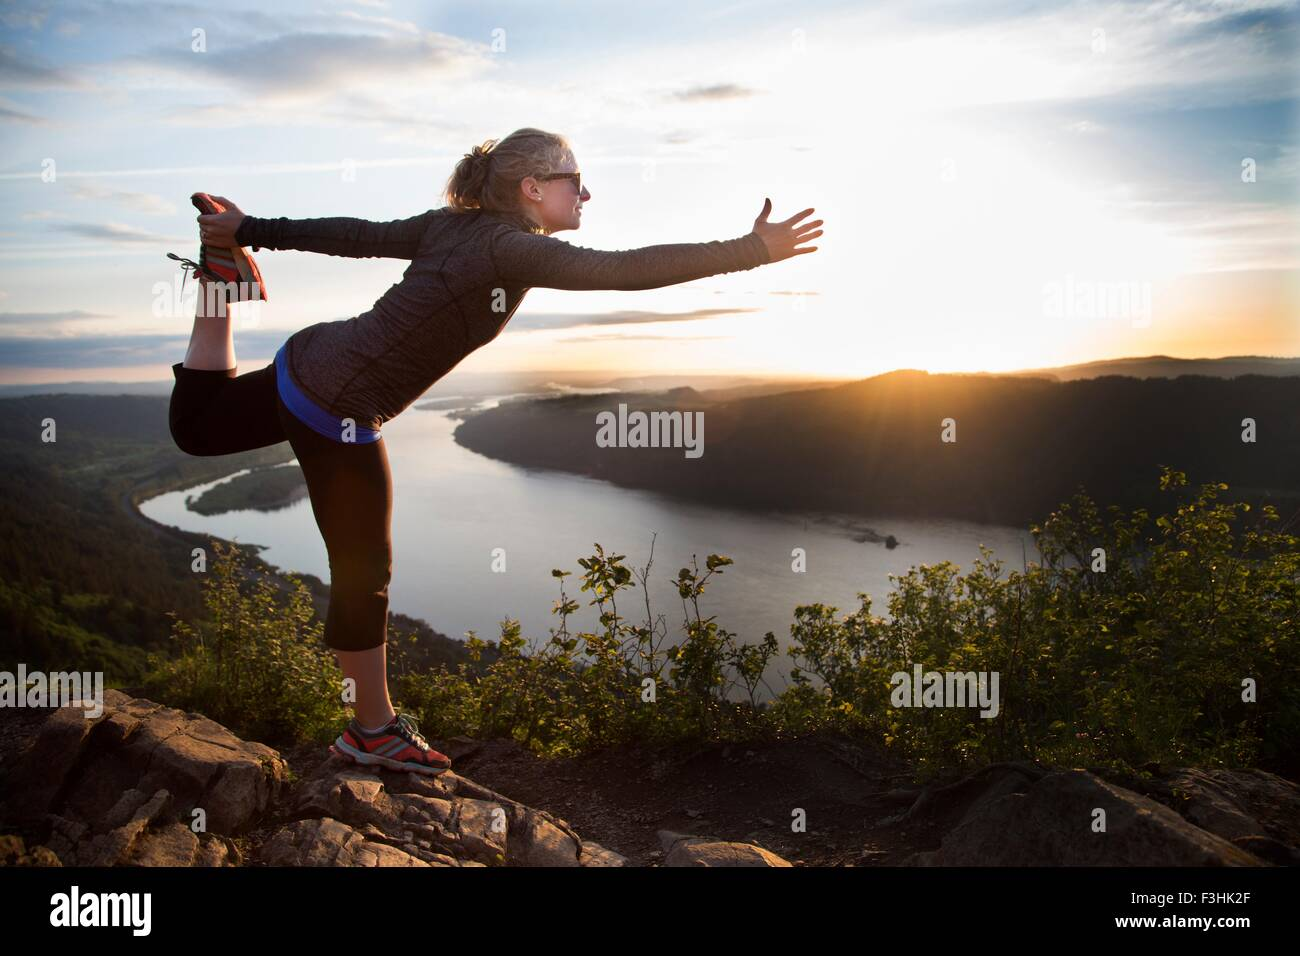 Woman practicing yoga on hill, Angel's Rest, Columbia River Gorge, Oregon, USA Banque D'Images